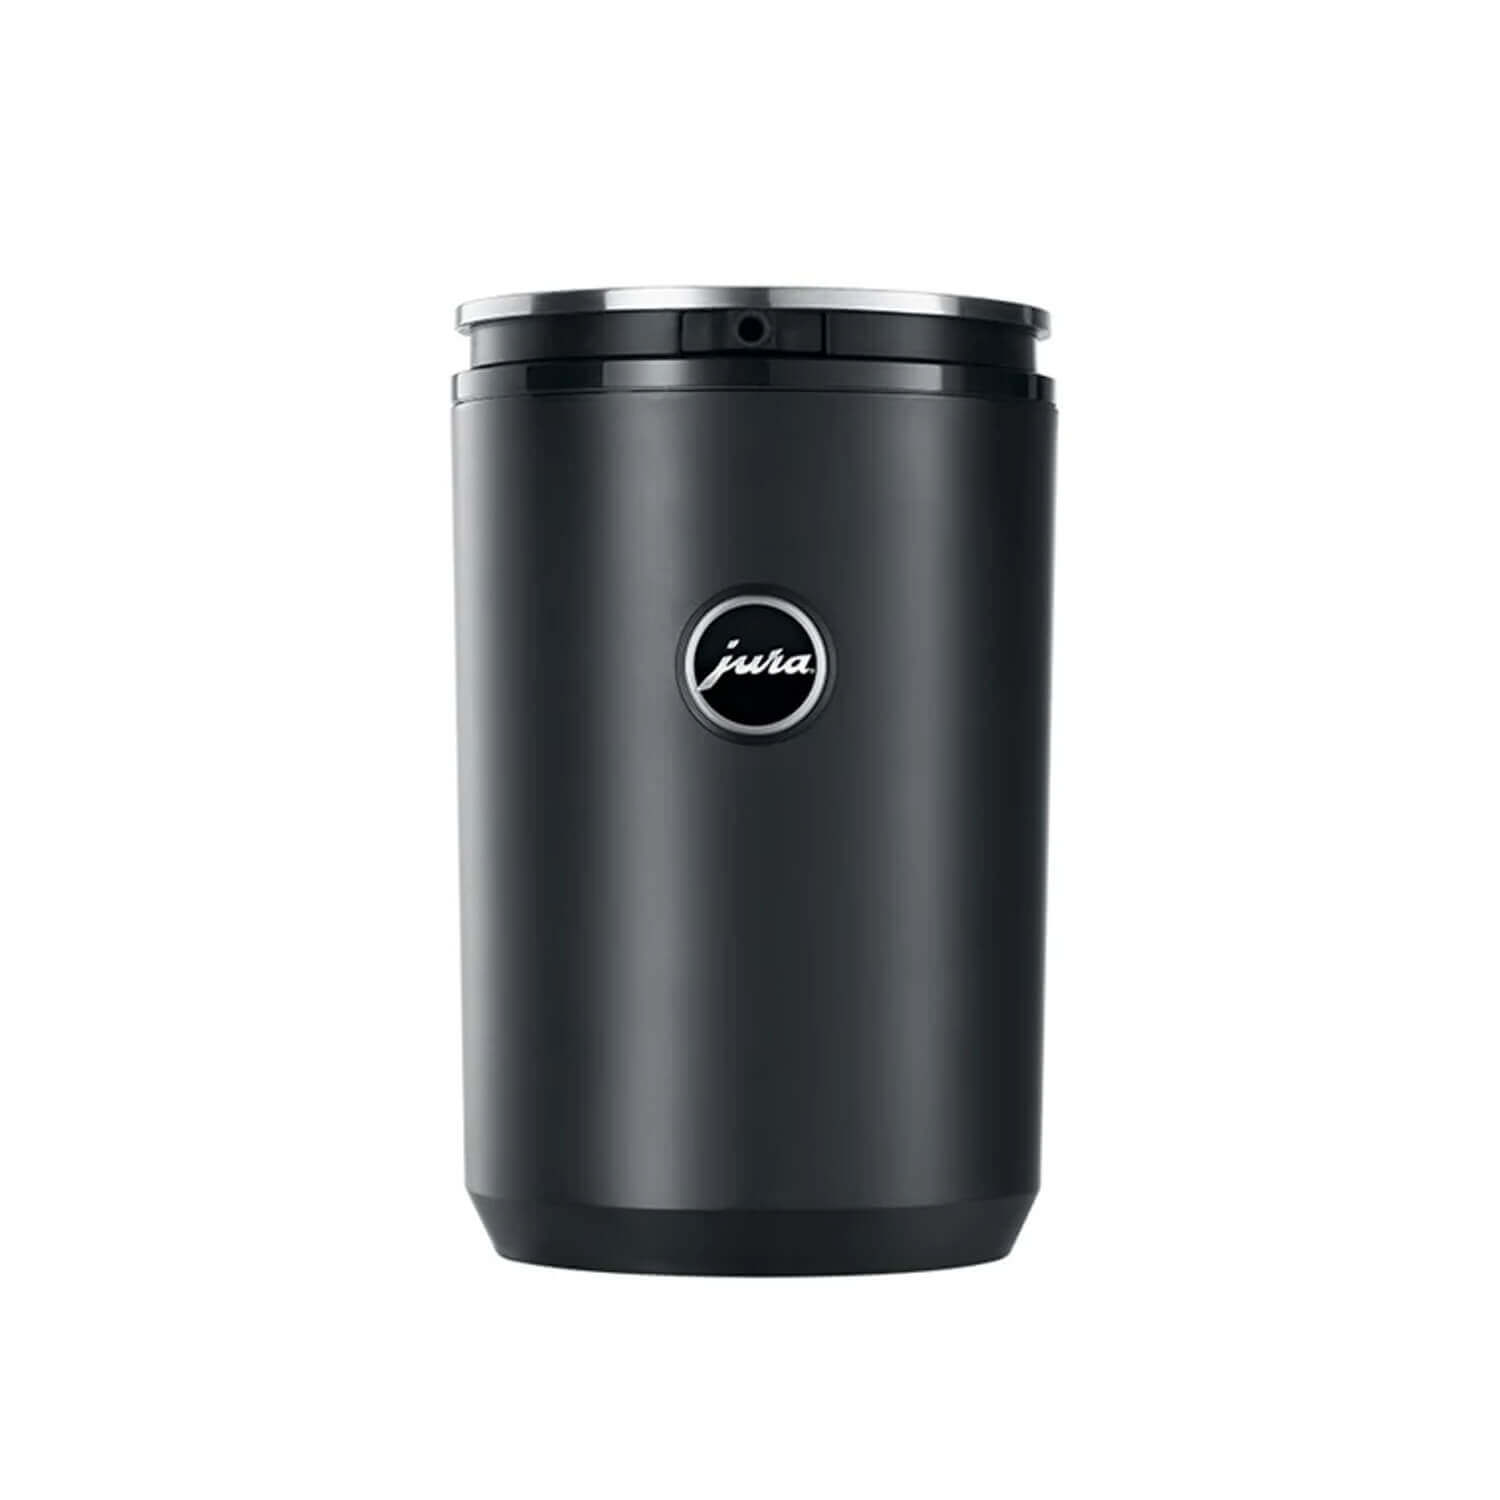 Jura - Cool control - Black - 1 l (NEW)